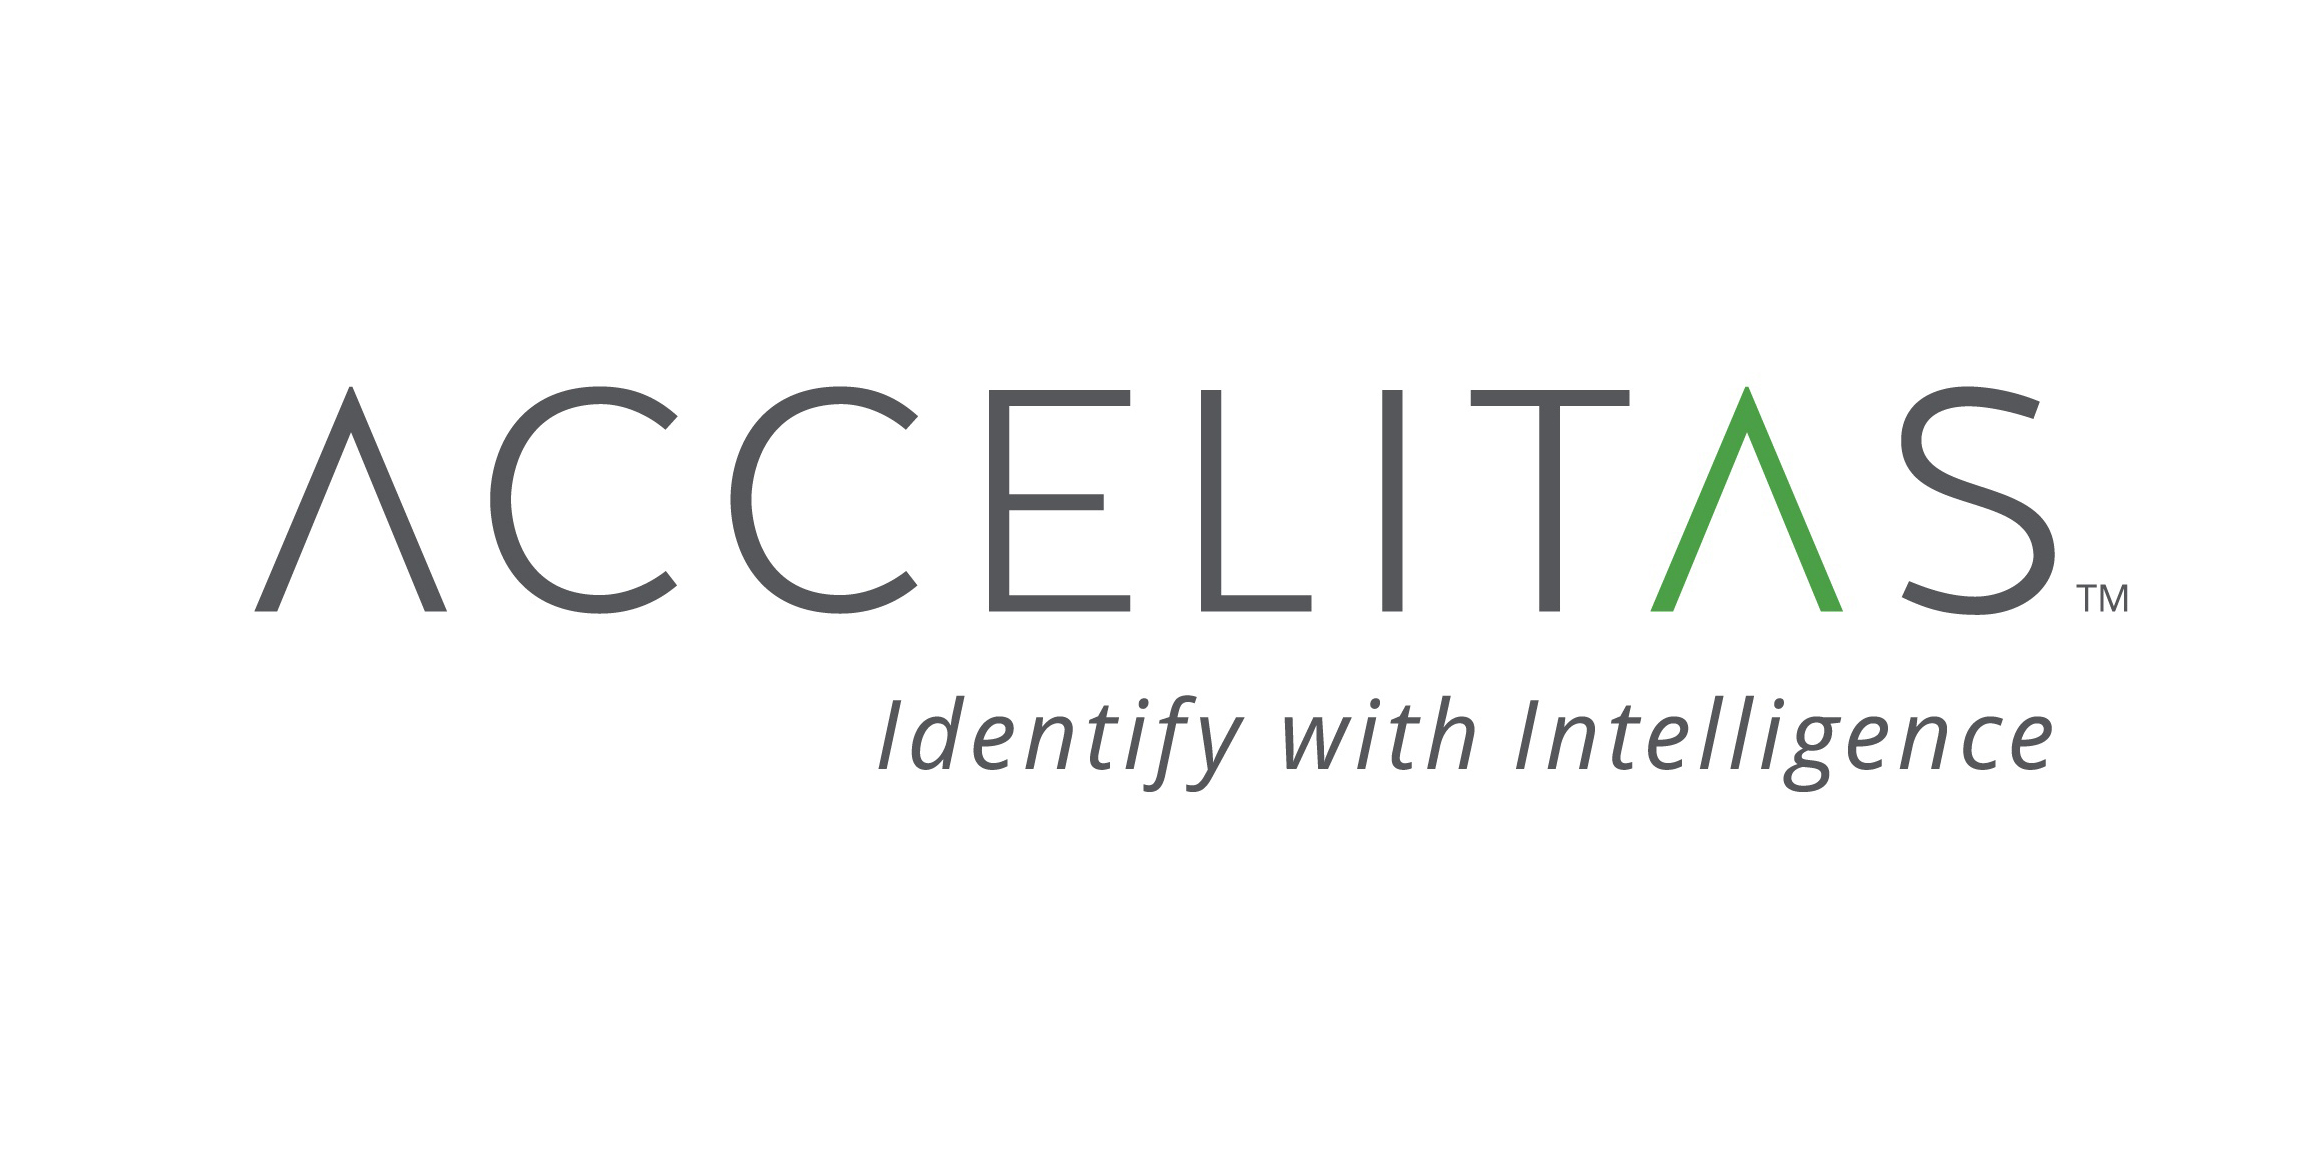 Predictive Analytics Innovator Accelitas Grows Business, Expands Product and Development team